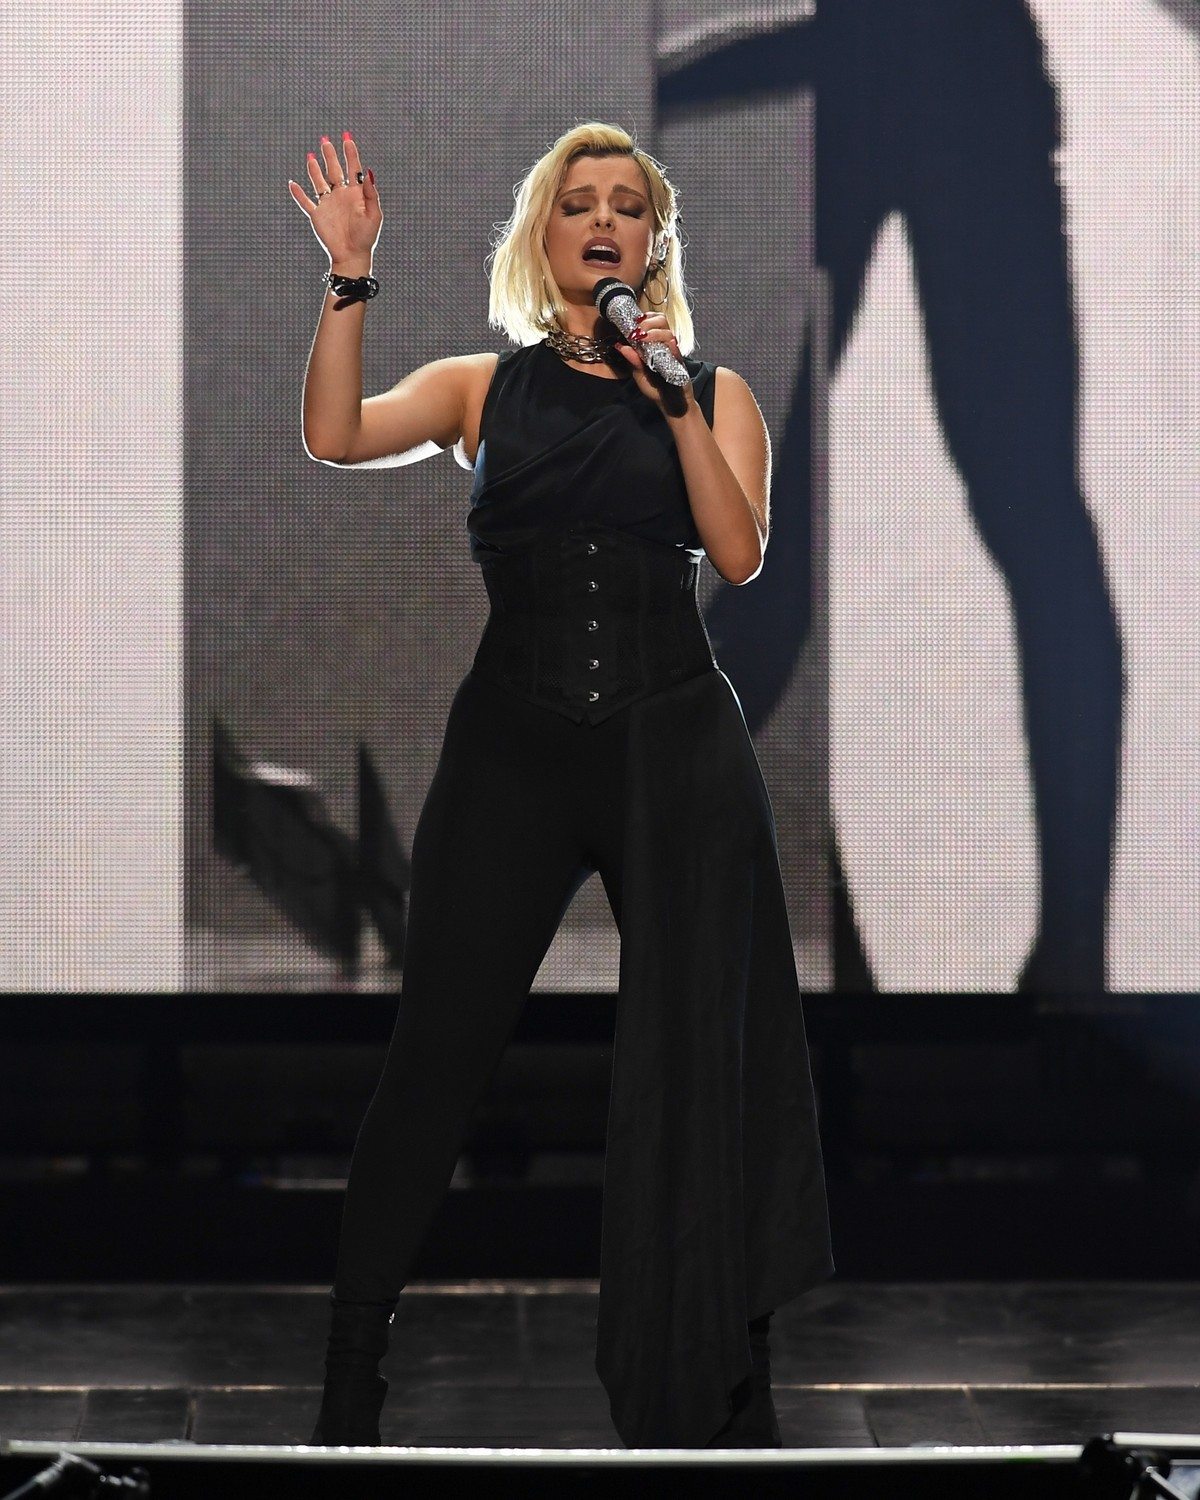 Bebe Rexha performs at the BB&T Center in Sunrise 2019/11/15 13